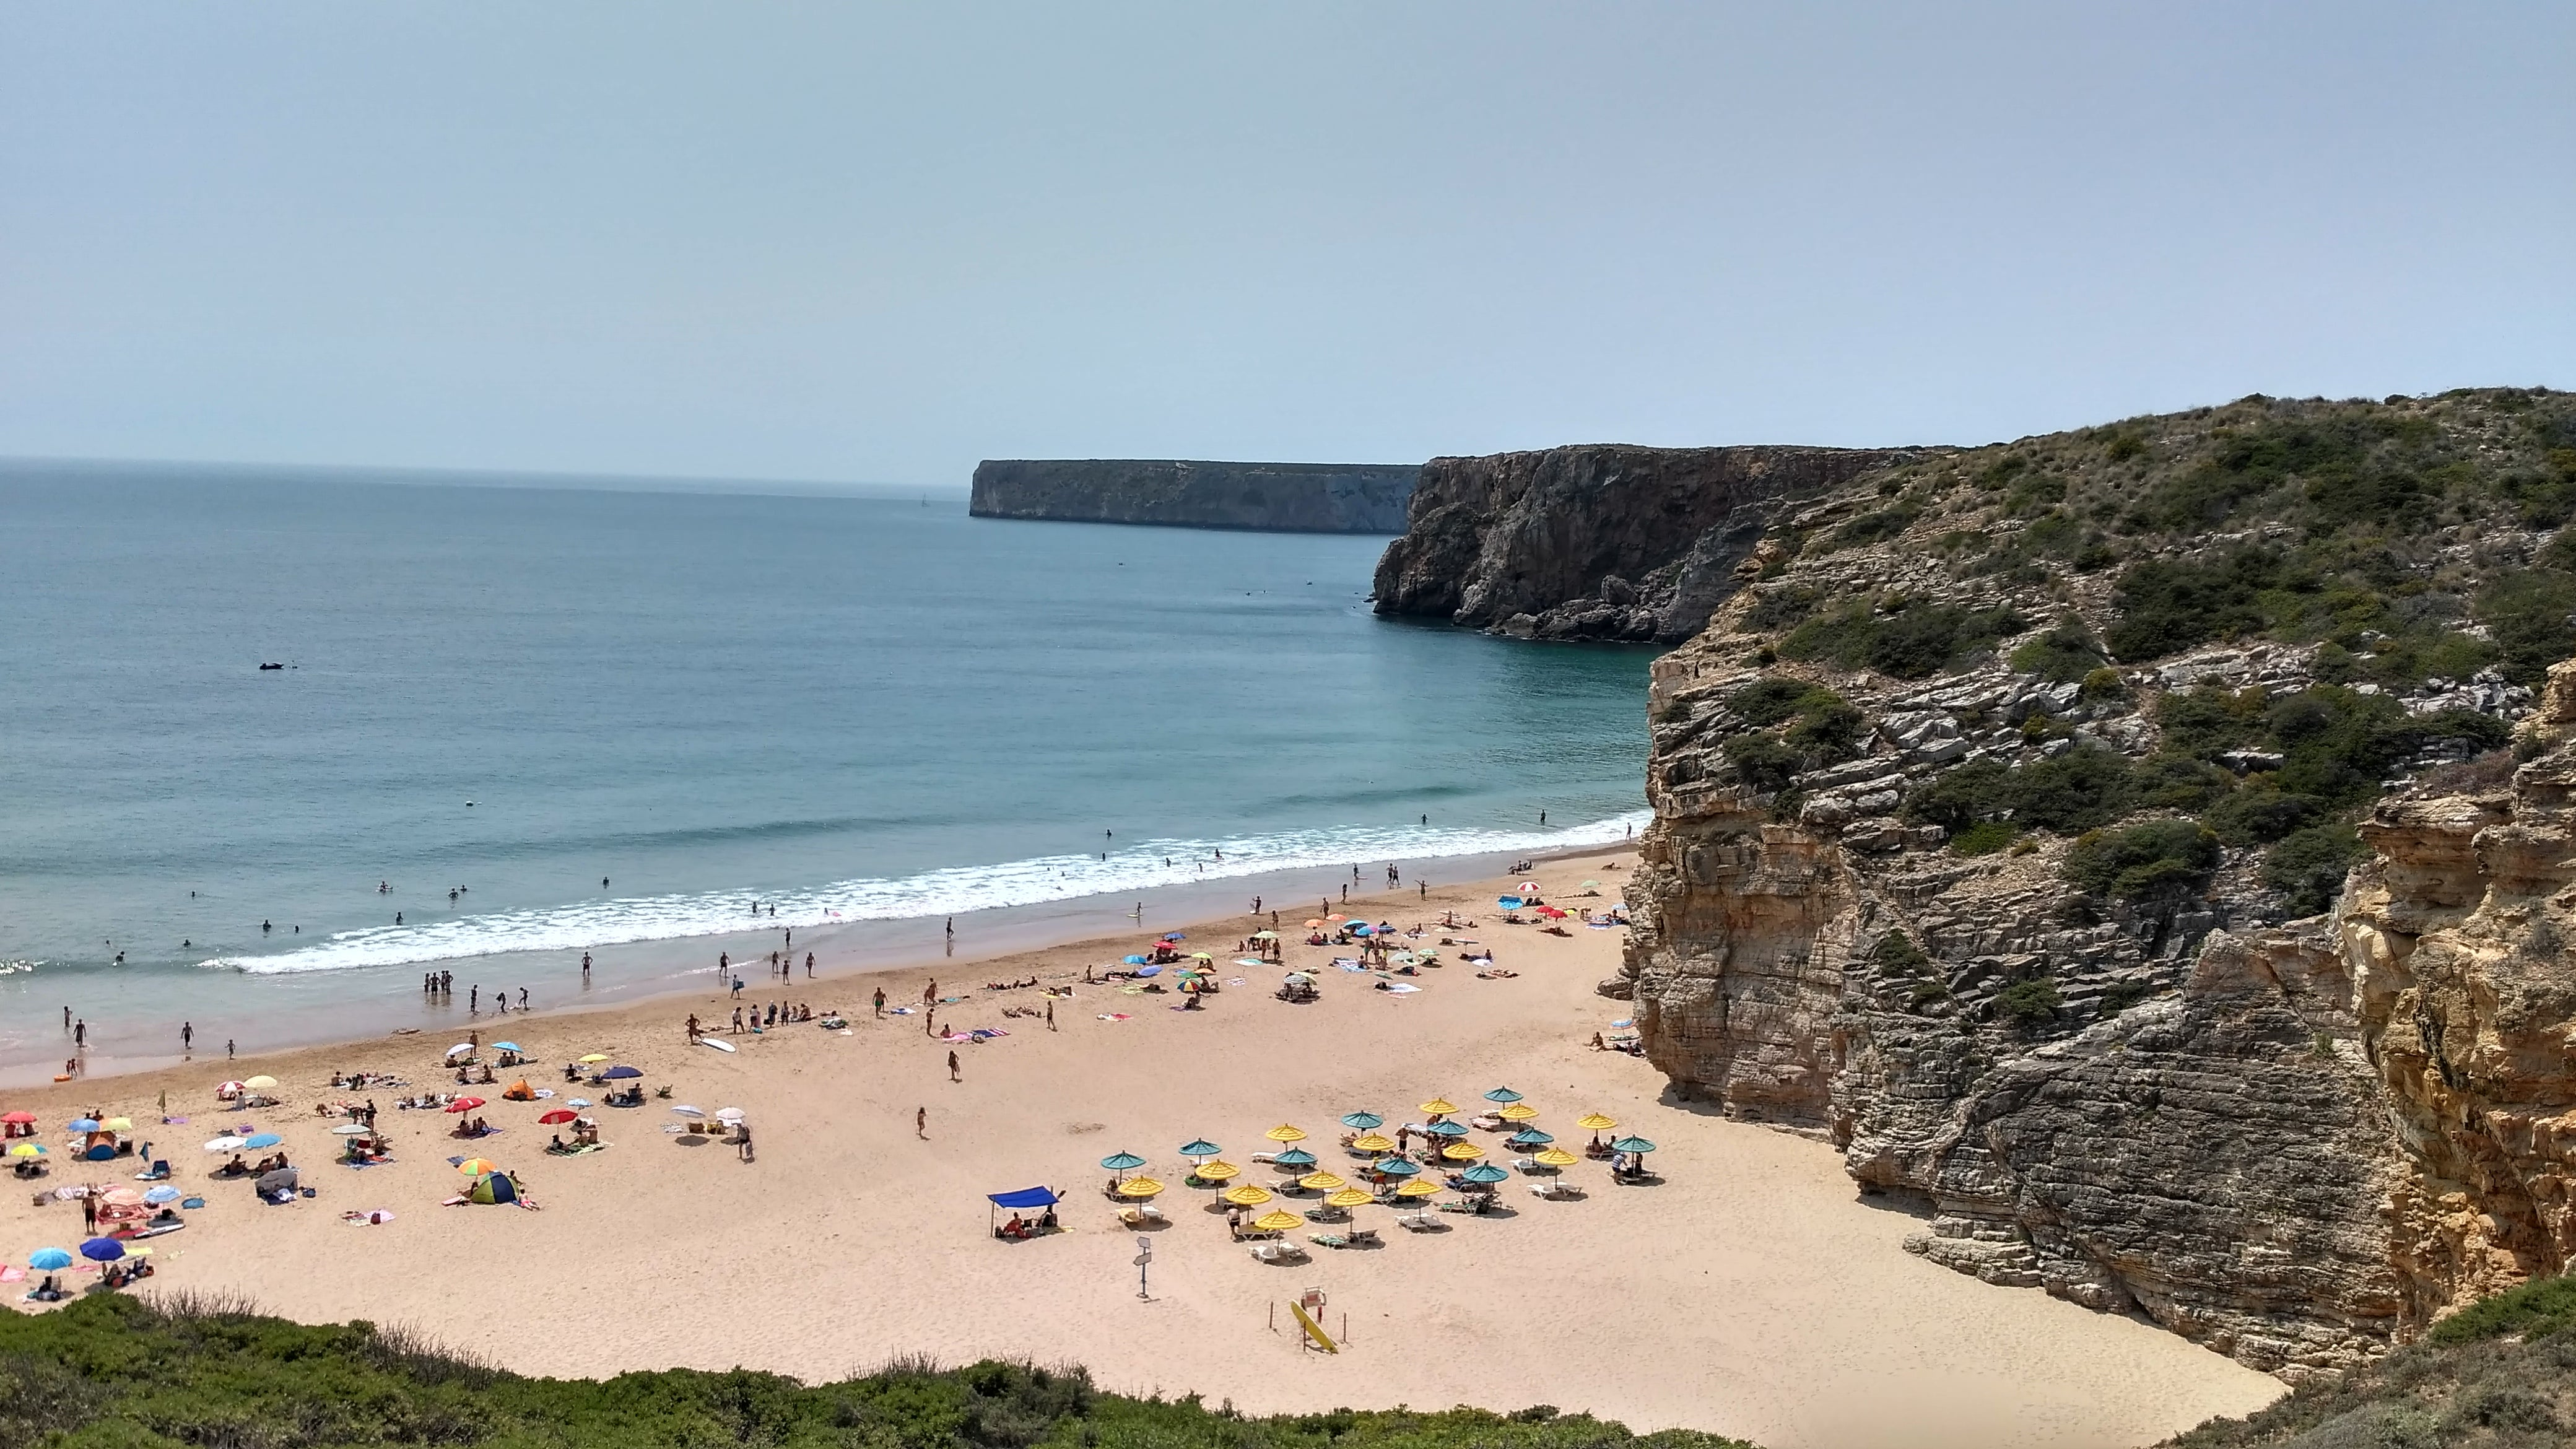 Mar en Playa de Beliche